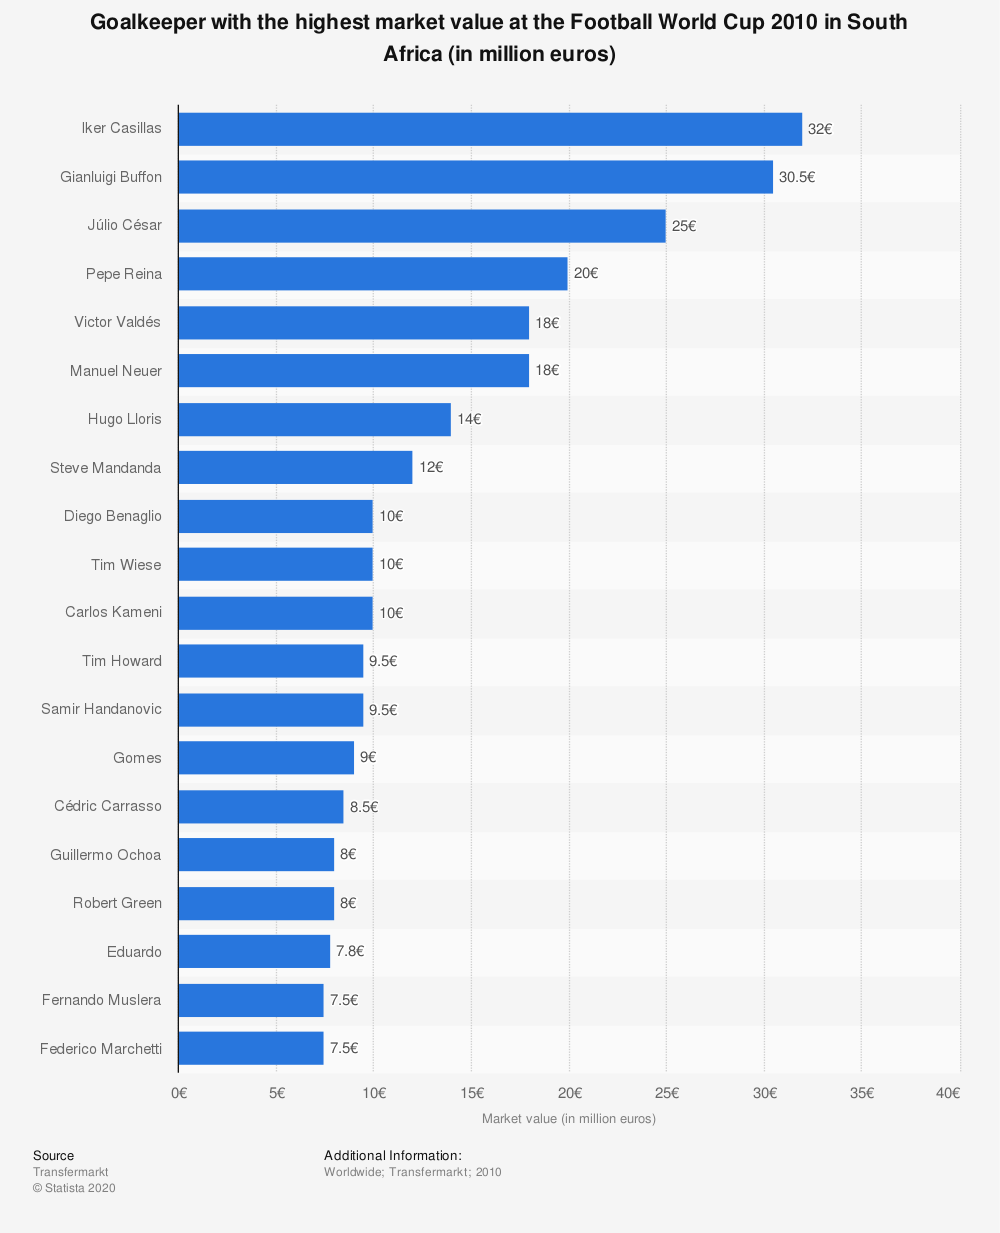 Statistic: Goalkeeper with the highest market value at the Football World Cup 2010 in South Africa (in million euros) | Statista